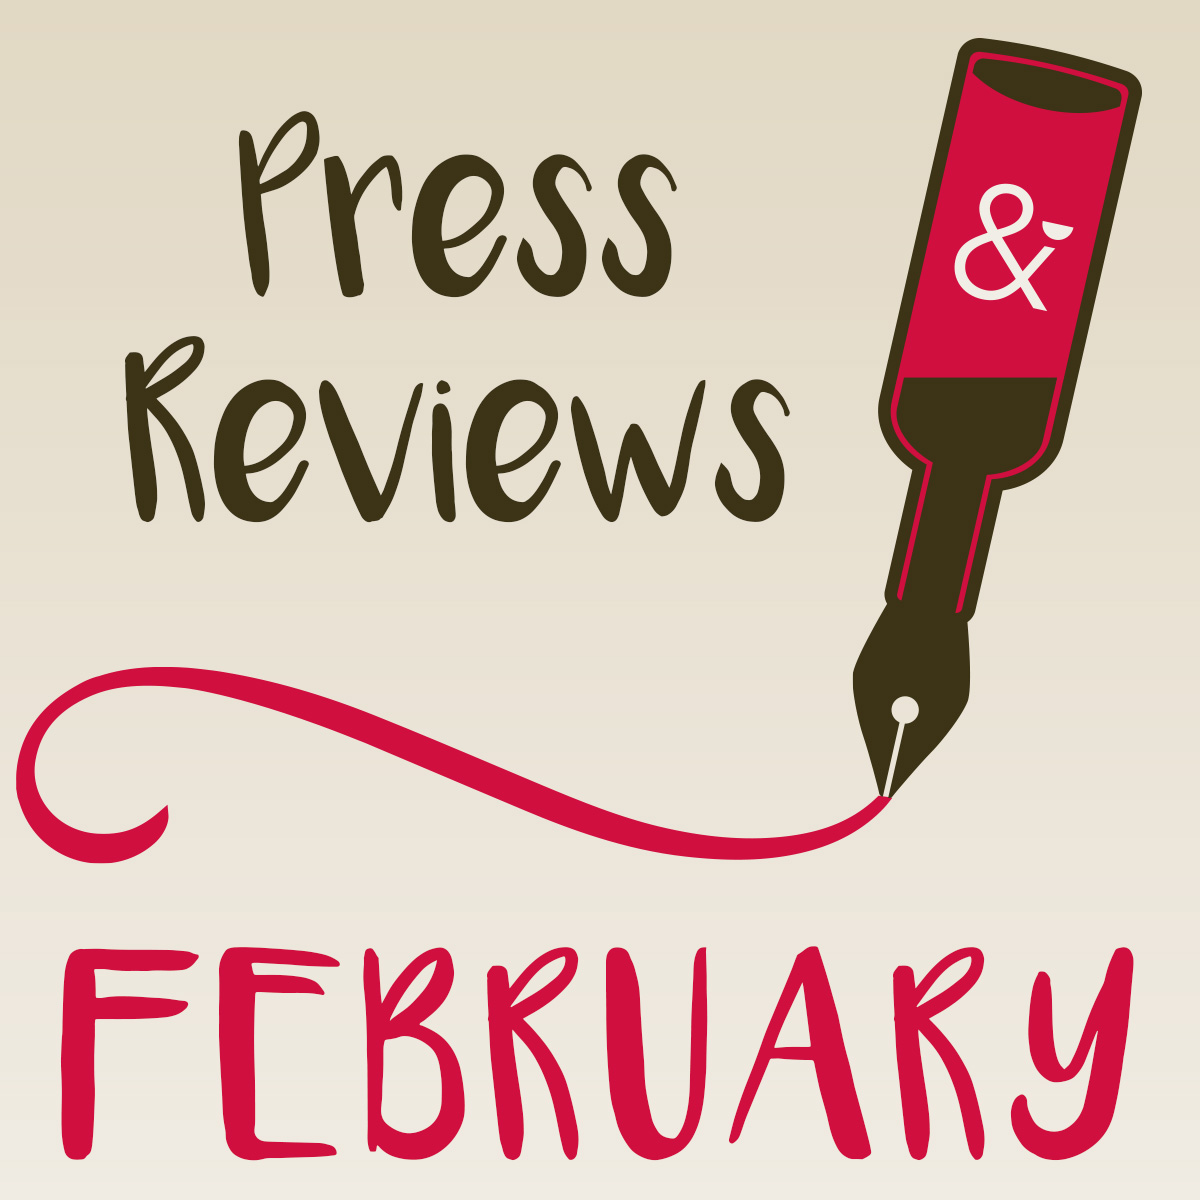 Press Reviews February